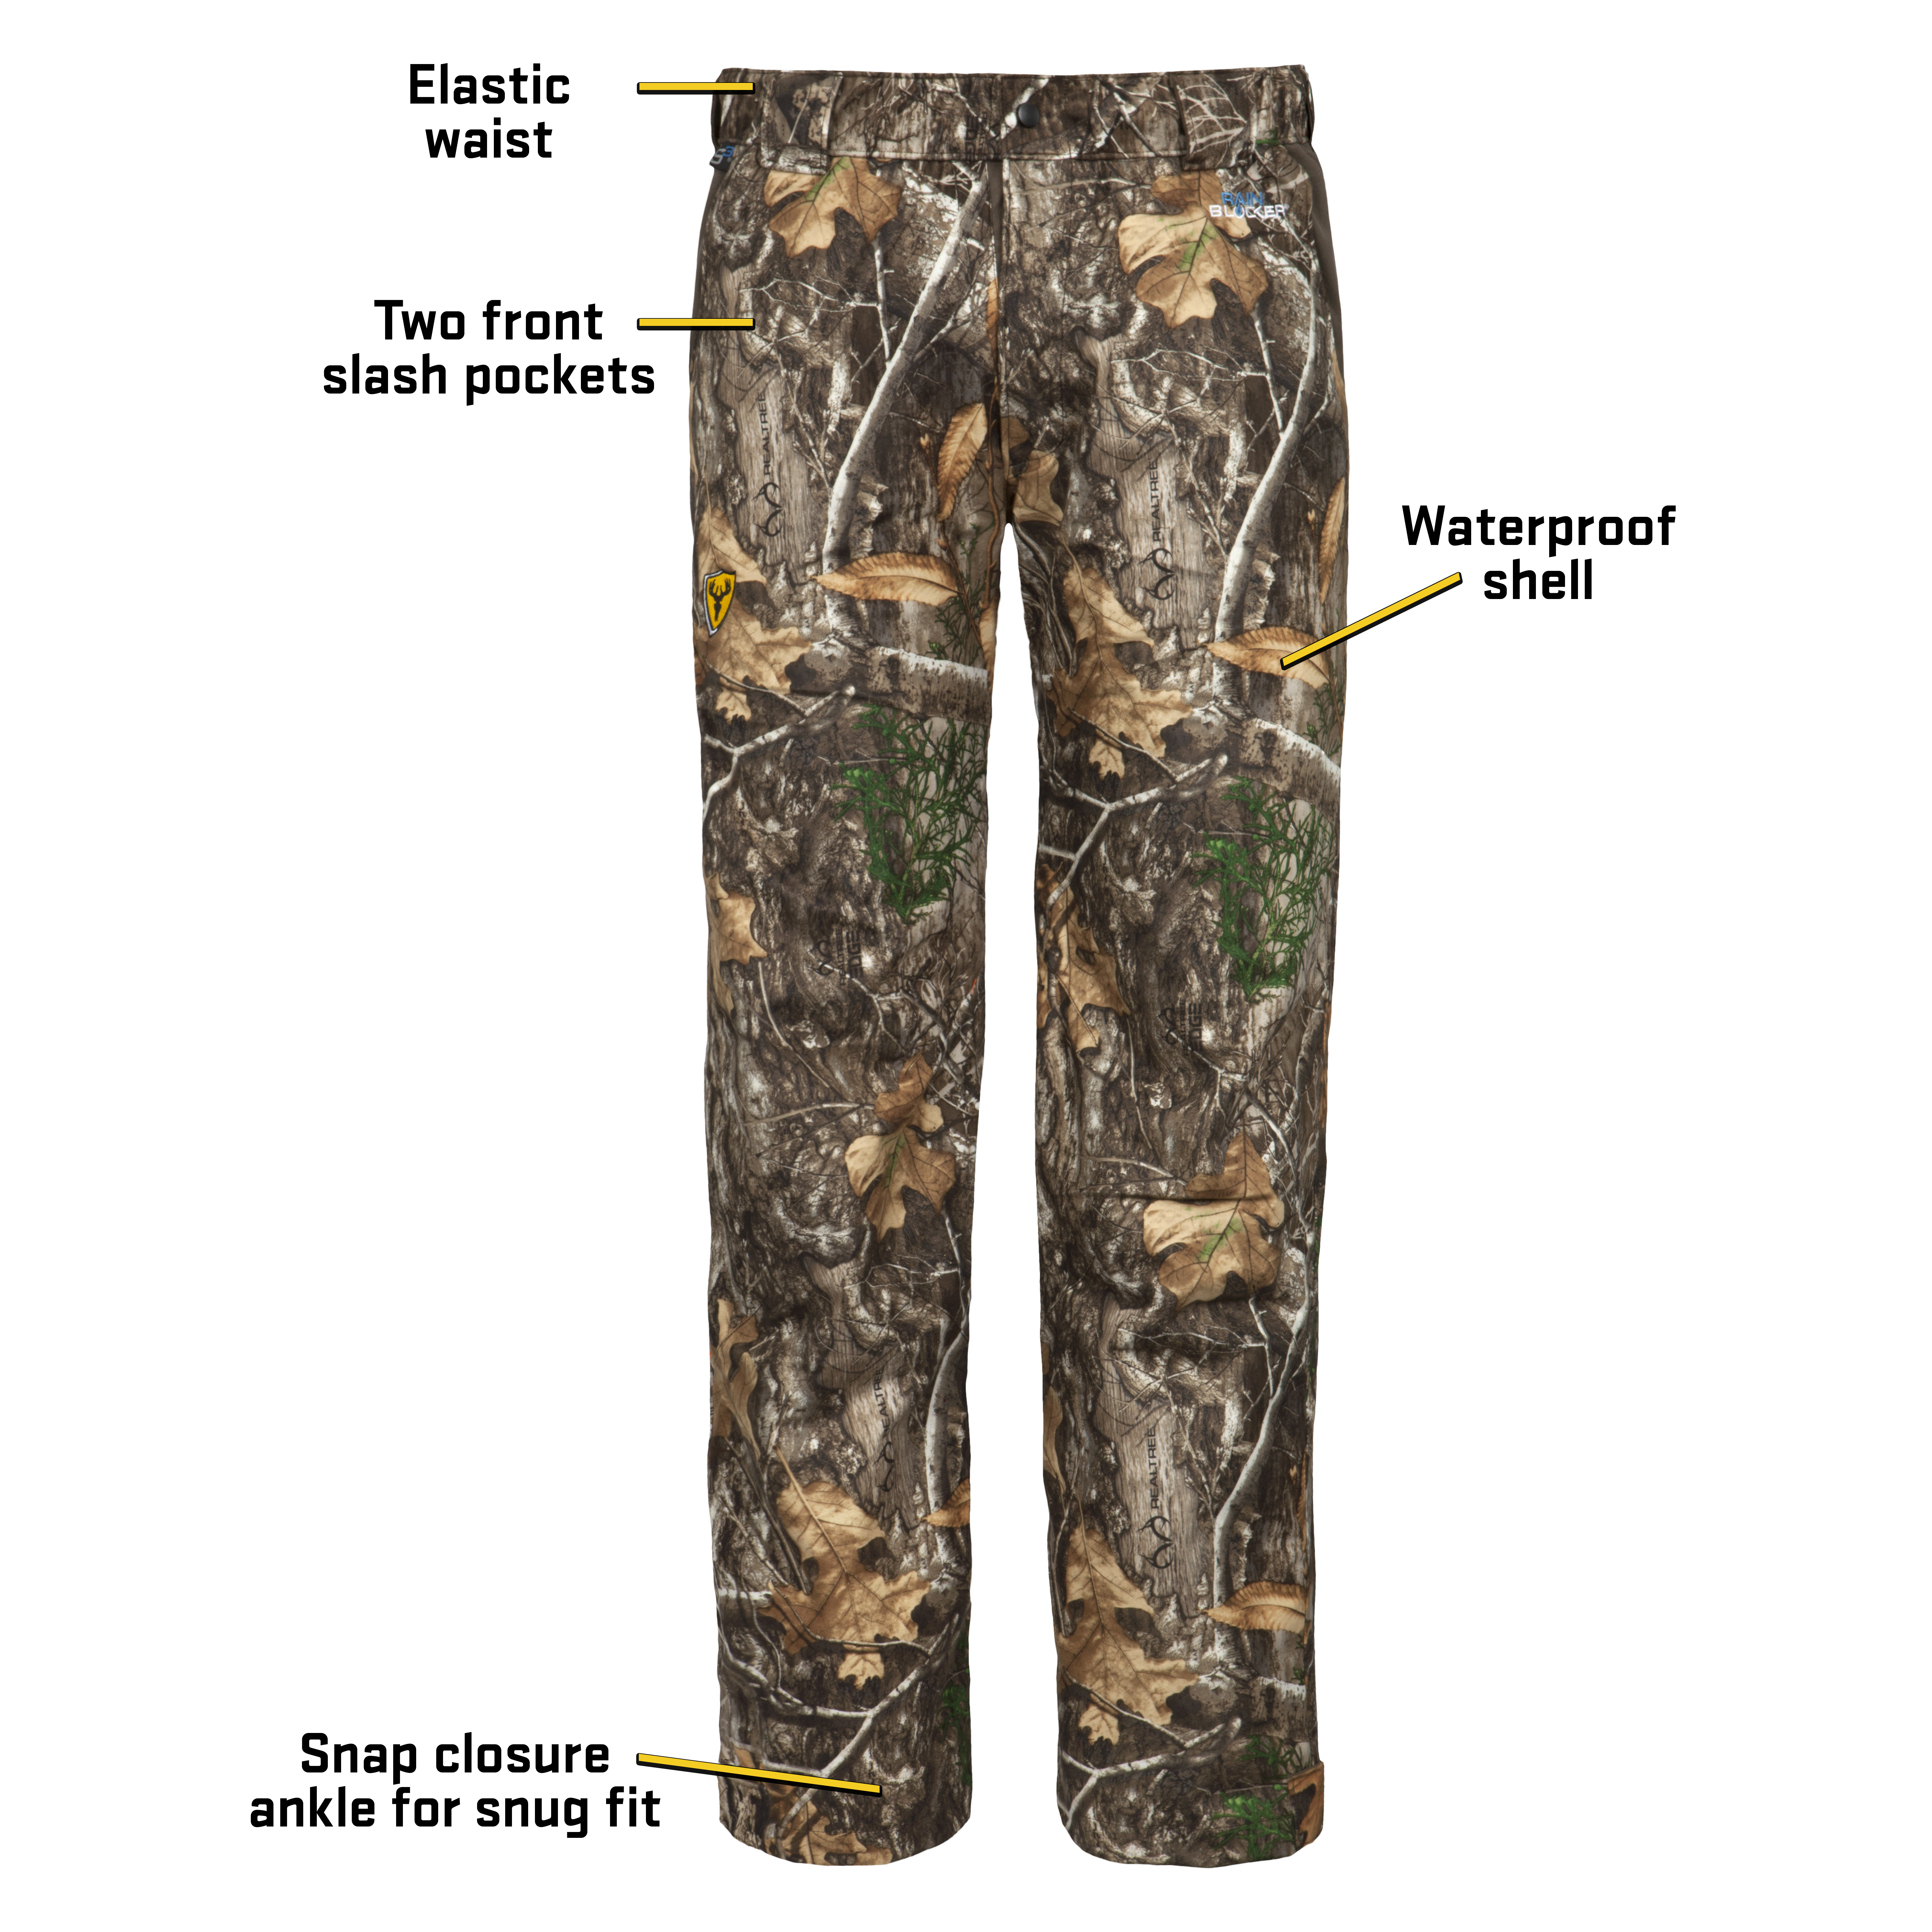 ScentBlocker-1055120-153-Drencher_Pant_Callouts-rain-suit-realtree-edge-mossy-oak-country-dna-coyote-hunting-big-tall-bigcamo